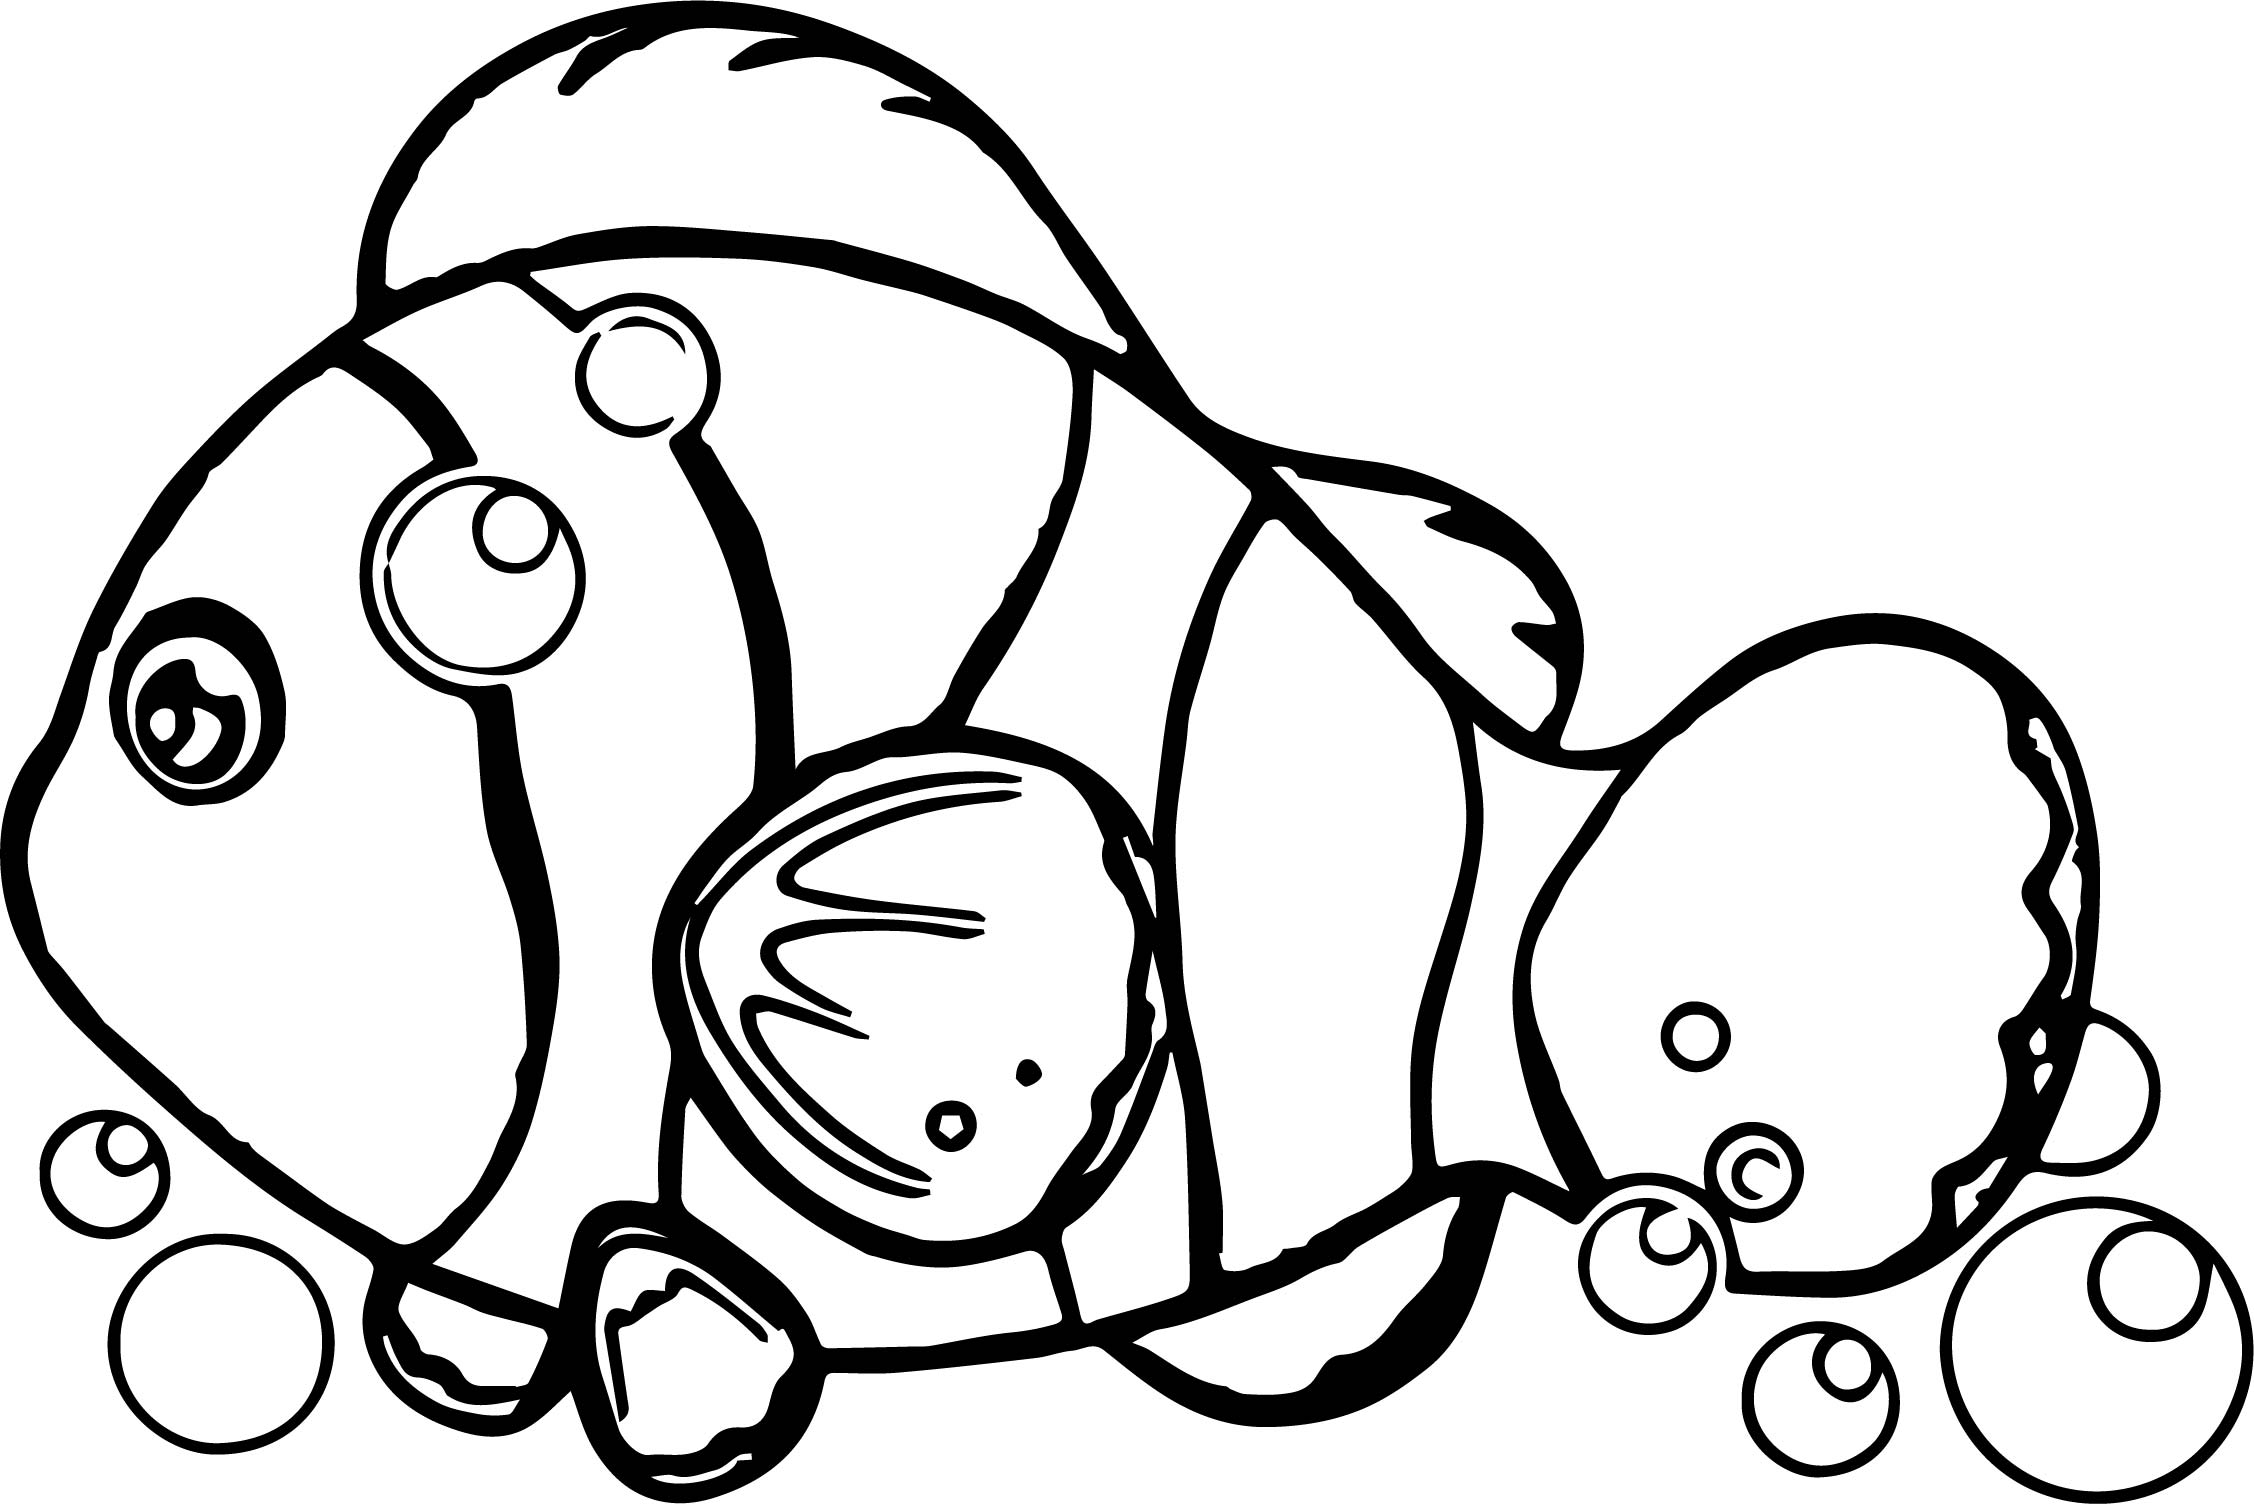 Underwater Fish Coloring Page